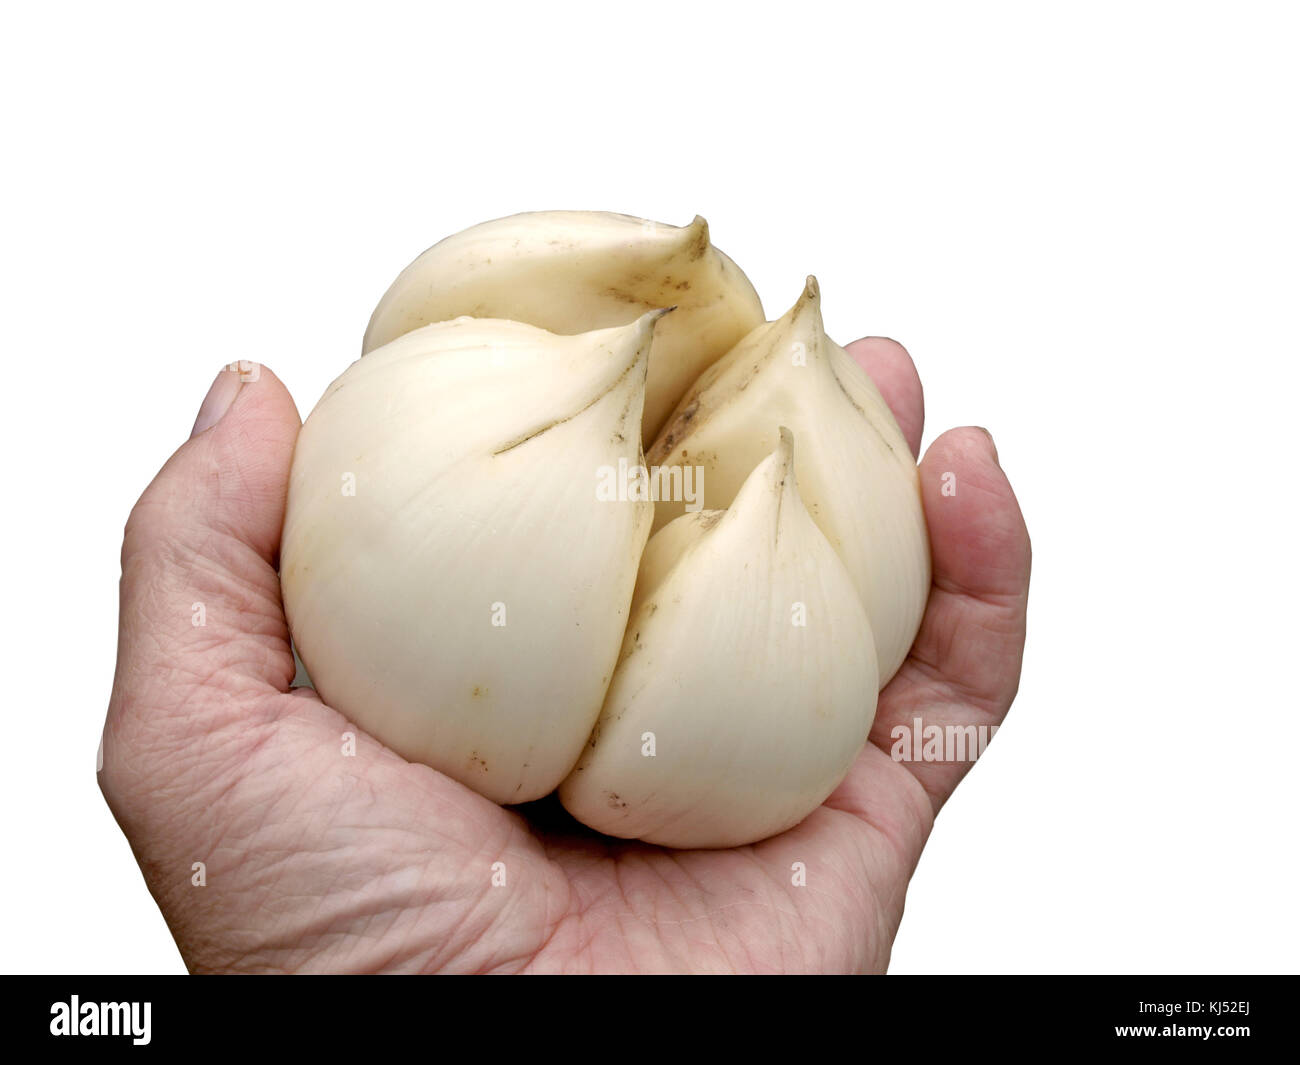 Hand holding big giant or elephant garlic close up isolated on white. - Stock Image